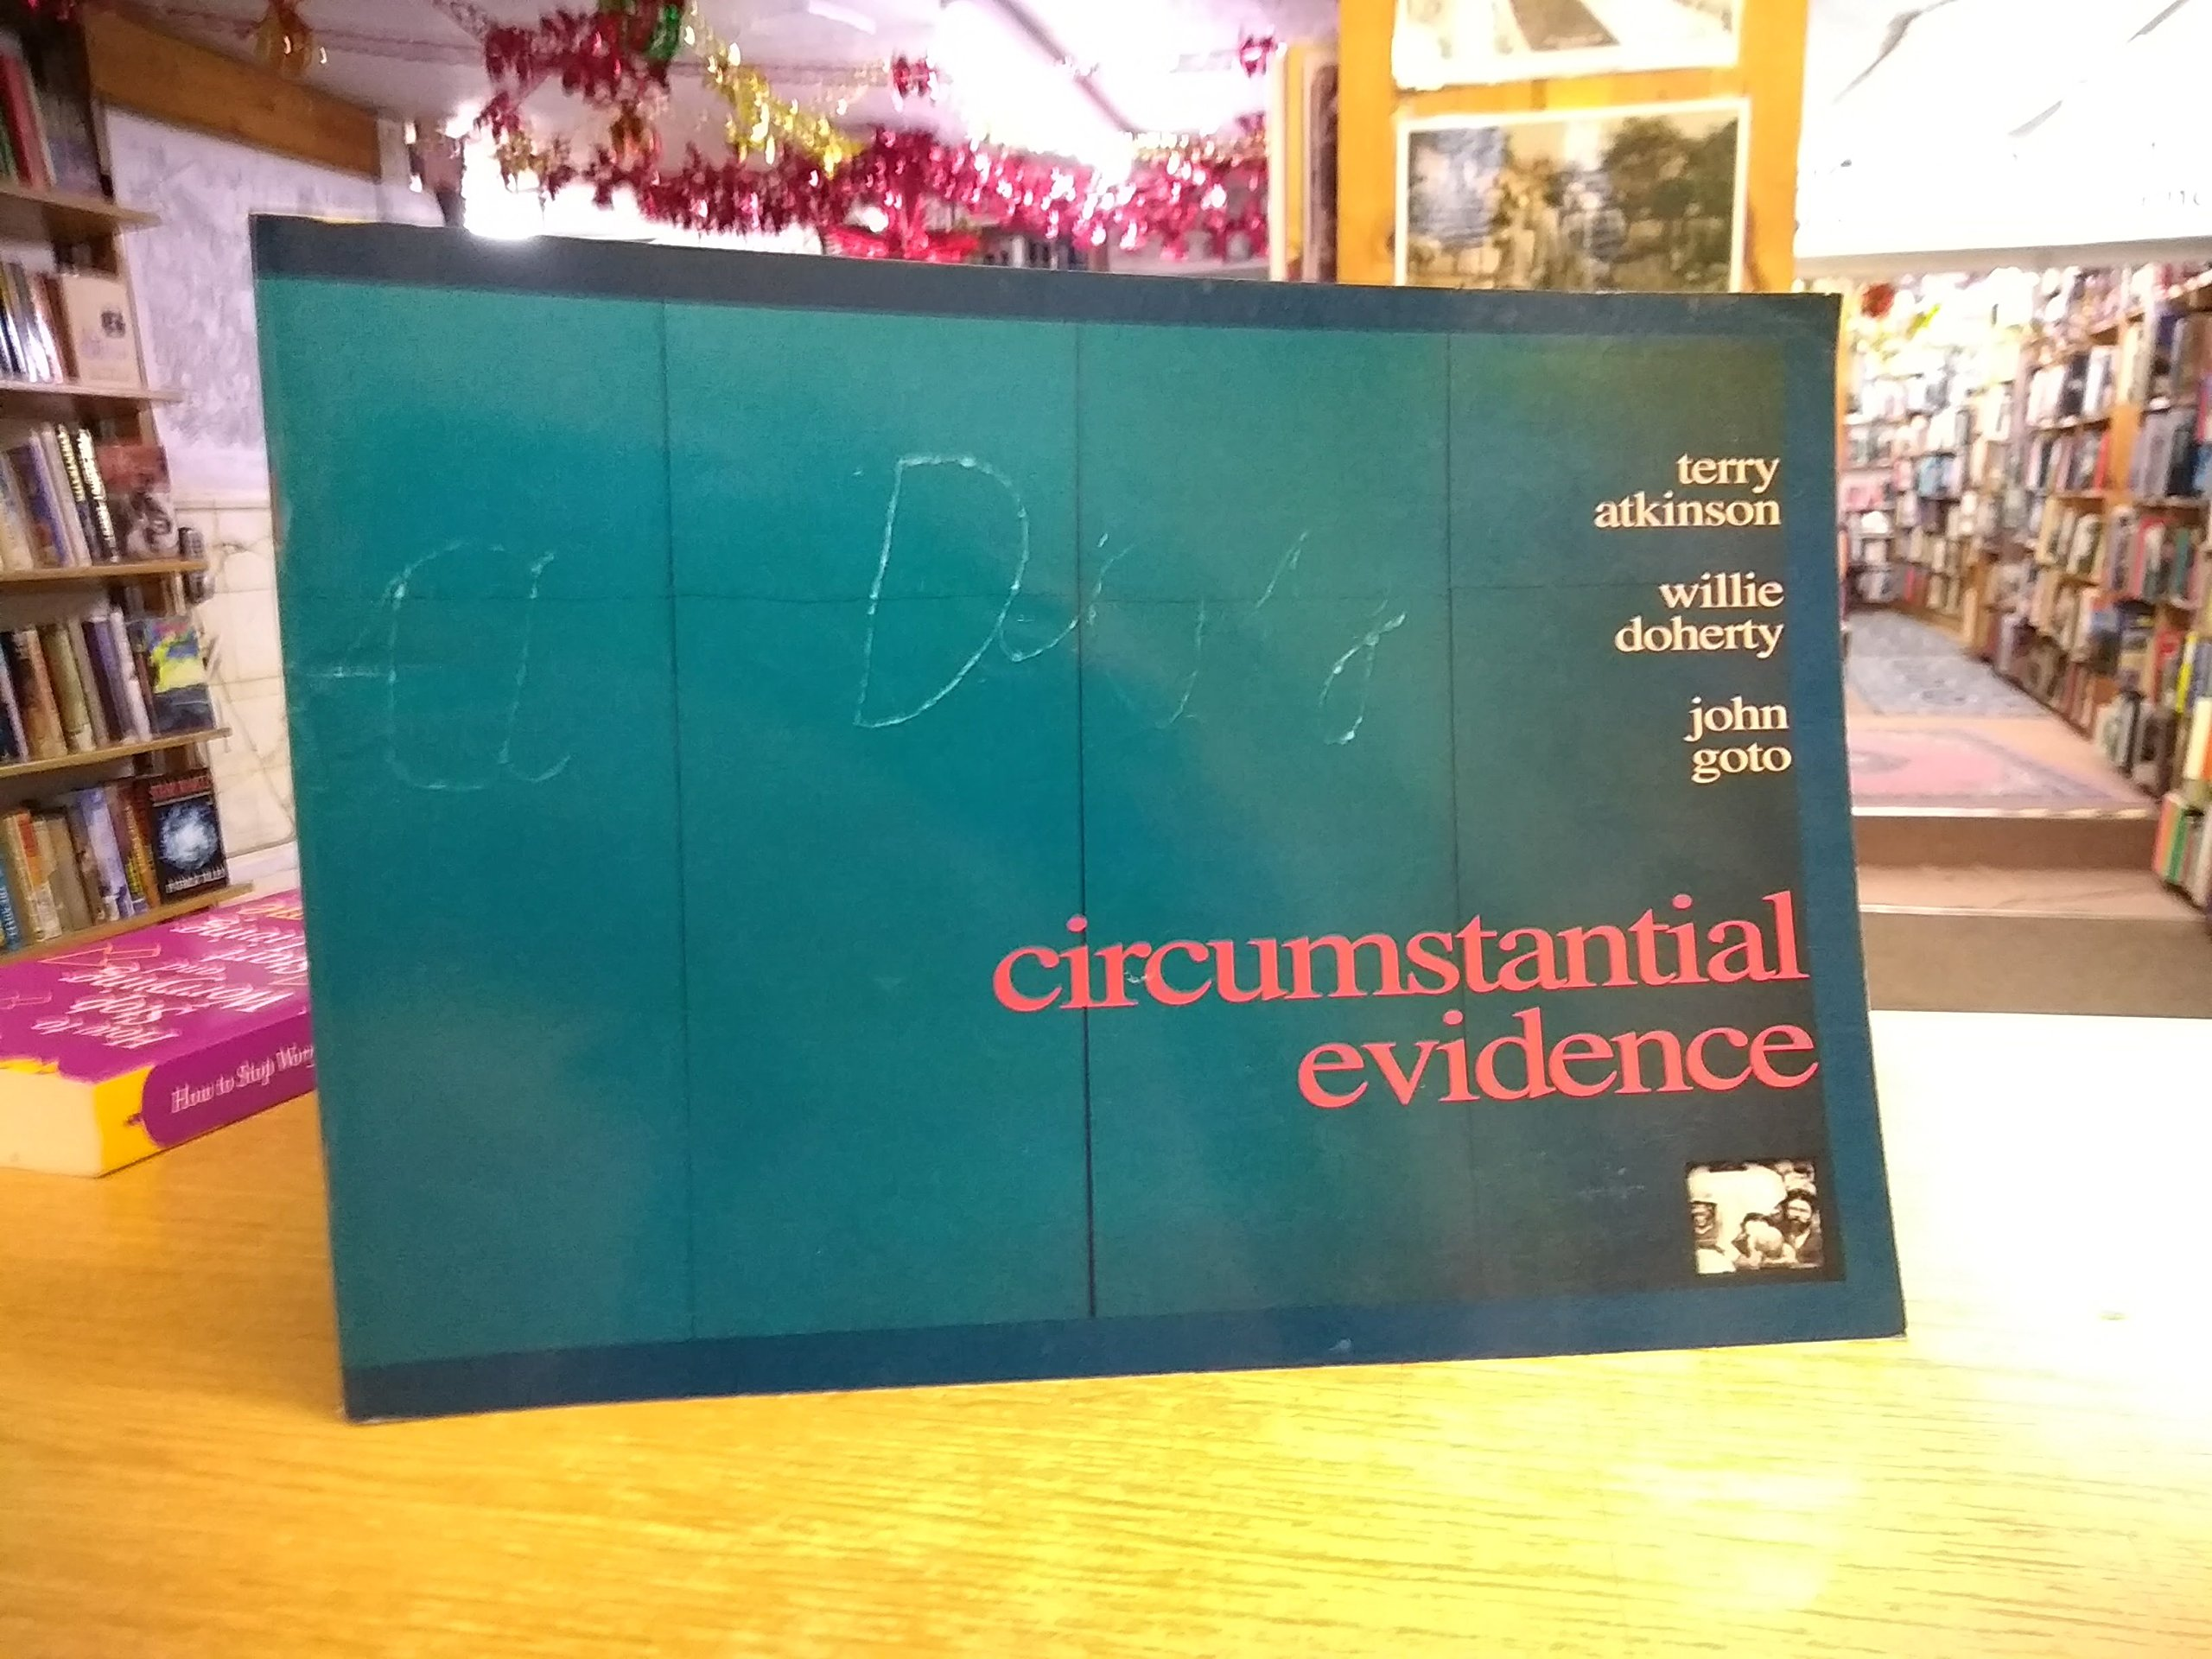 circumstantial evidence new work by terry atkinson willie doherty and john goto